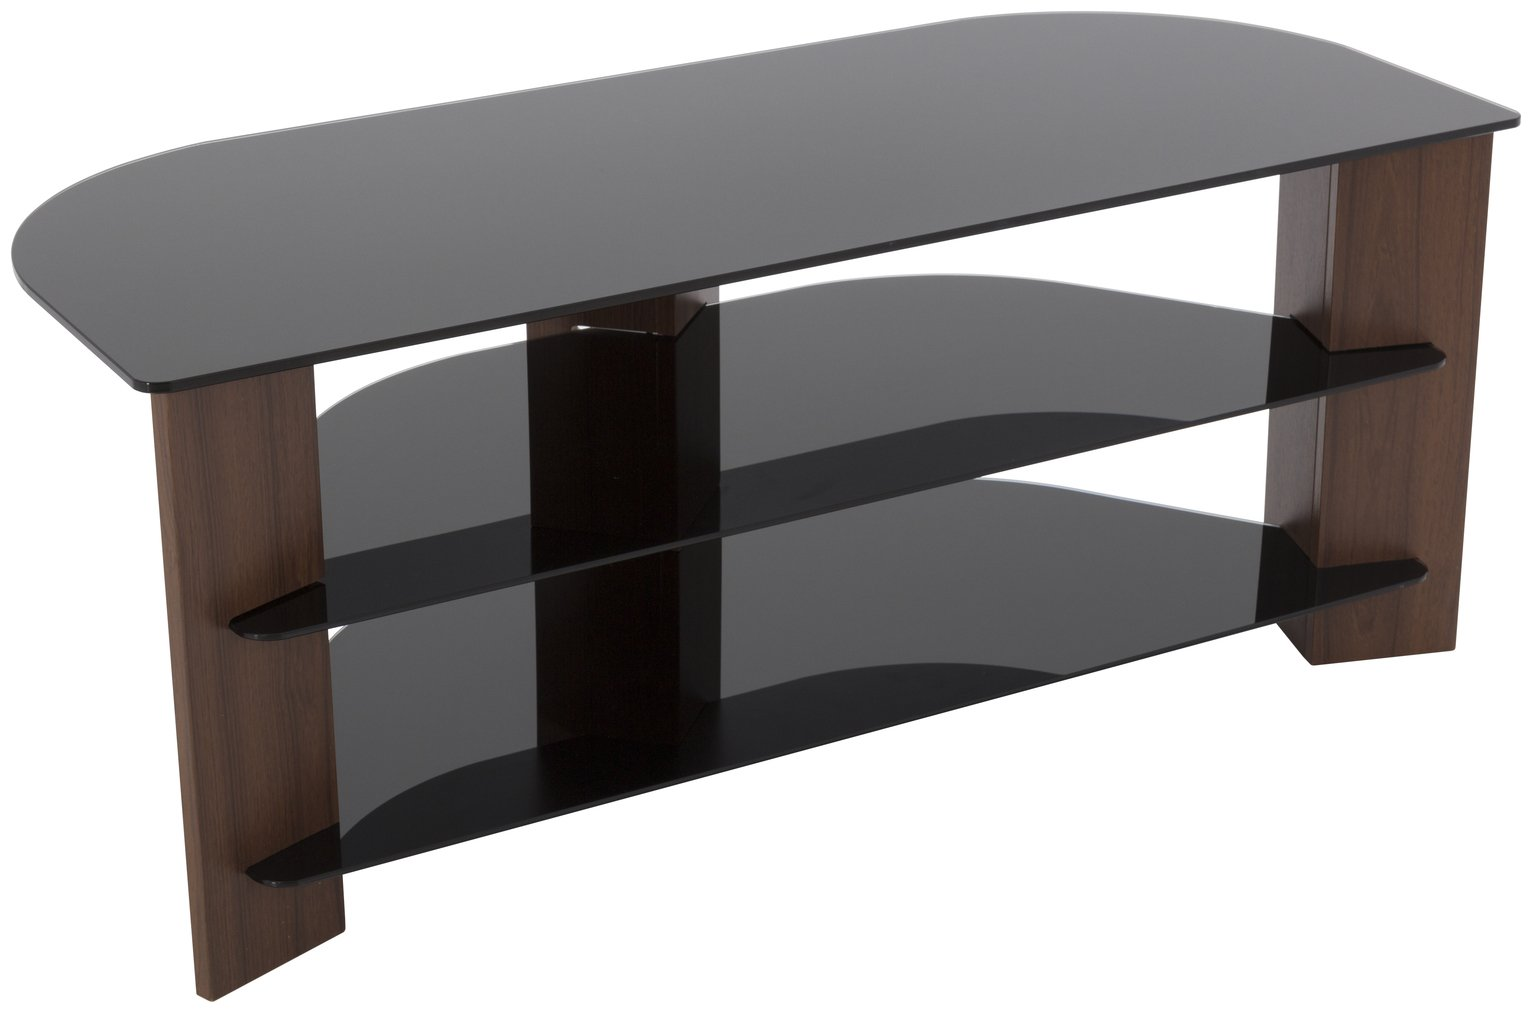 walnut and black glass 55 inch tv stand review. Black Bedroom Furniture Sets. Home Design Ideas